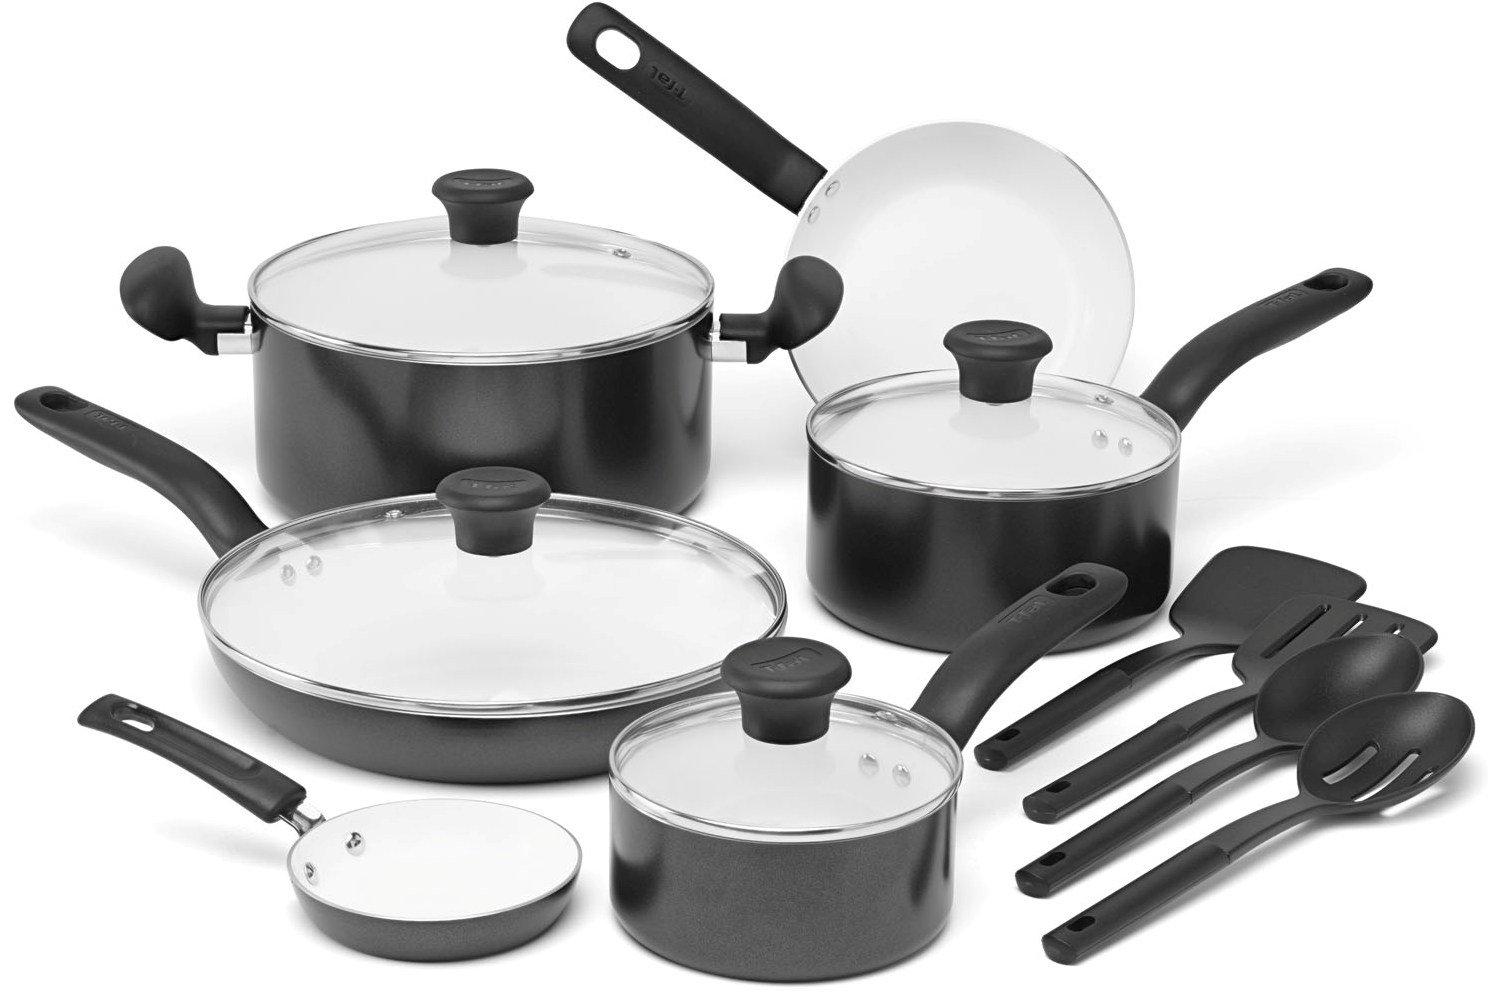 T-fal C921SE Initiatives Nonstick Ceramic Coating PTFE PFOA and Cadmium Free Scratch Resistant Dishwasher Safe Oven Safe Cookware Set